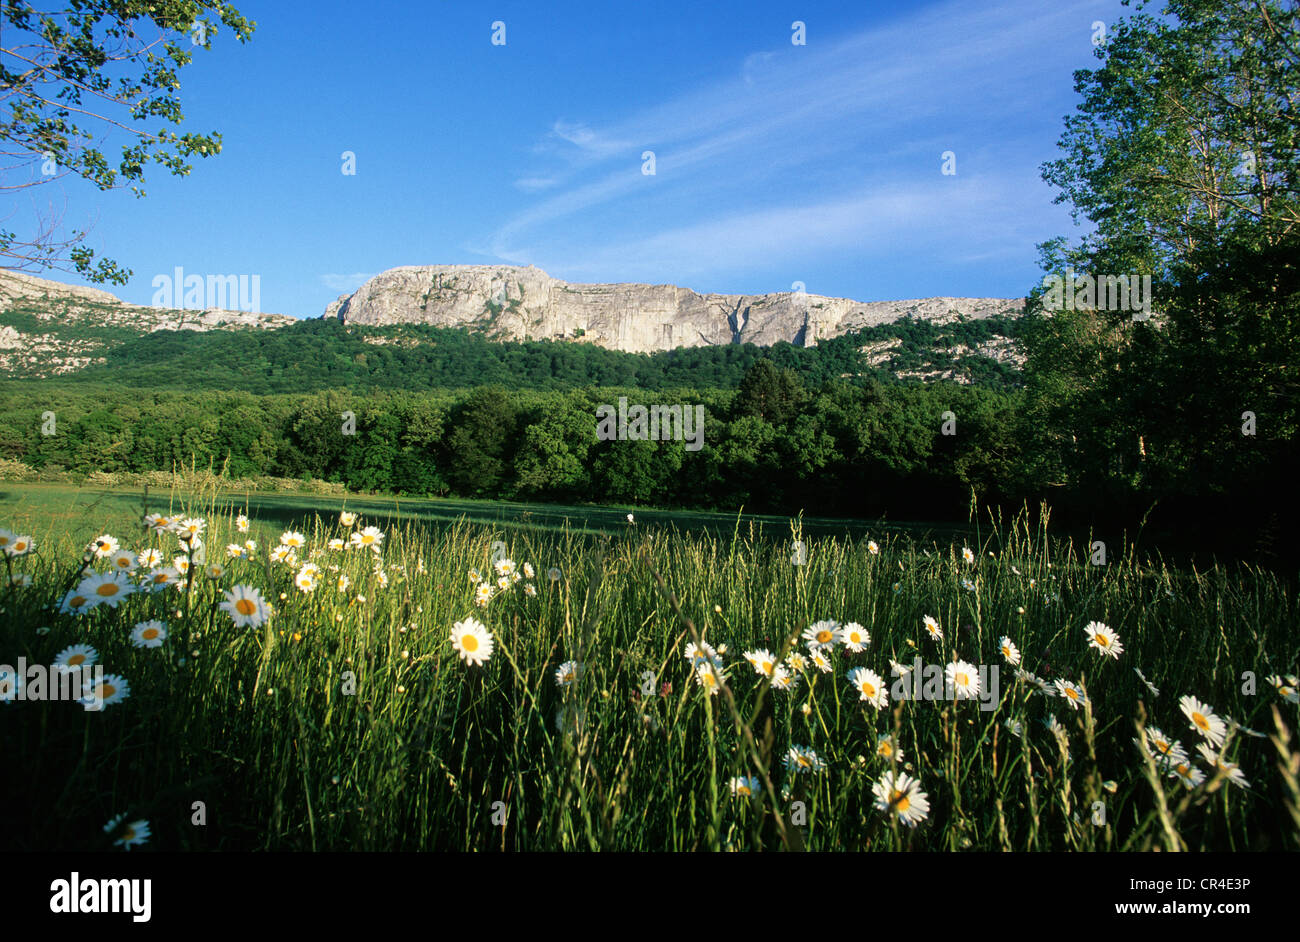 France, Var, the Sainte Baume - Stock Image